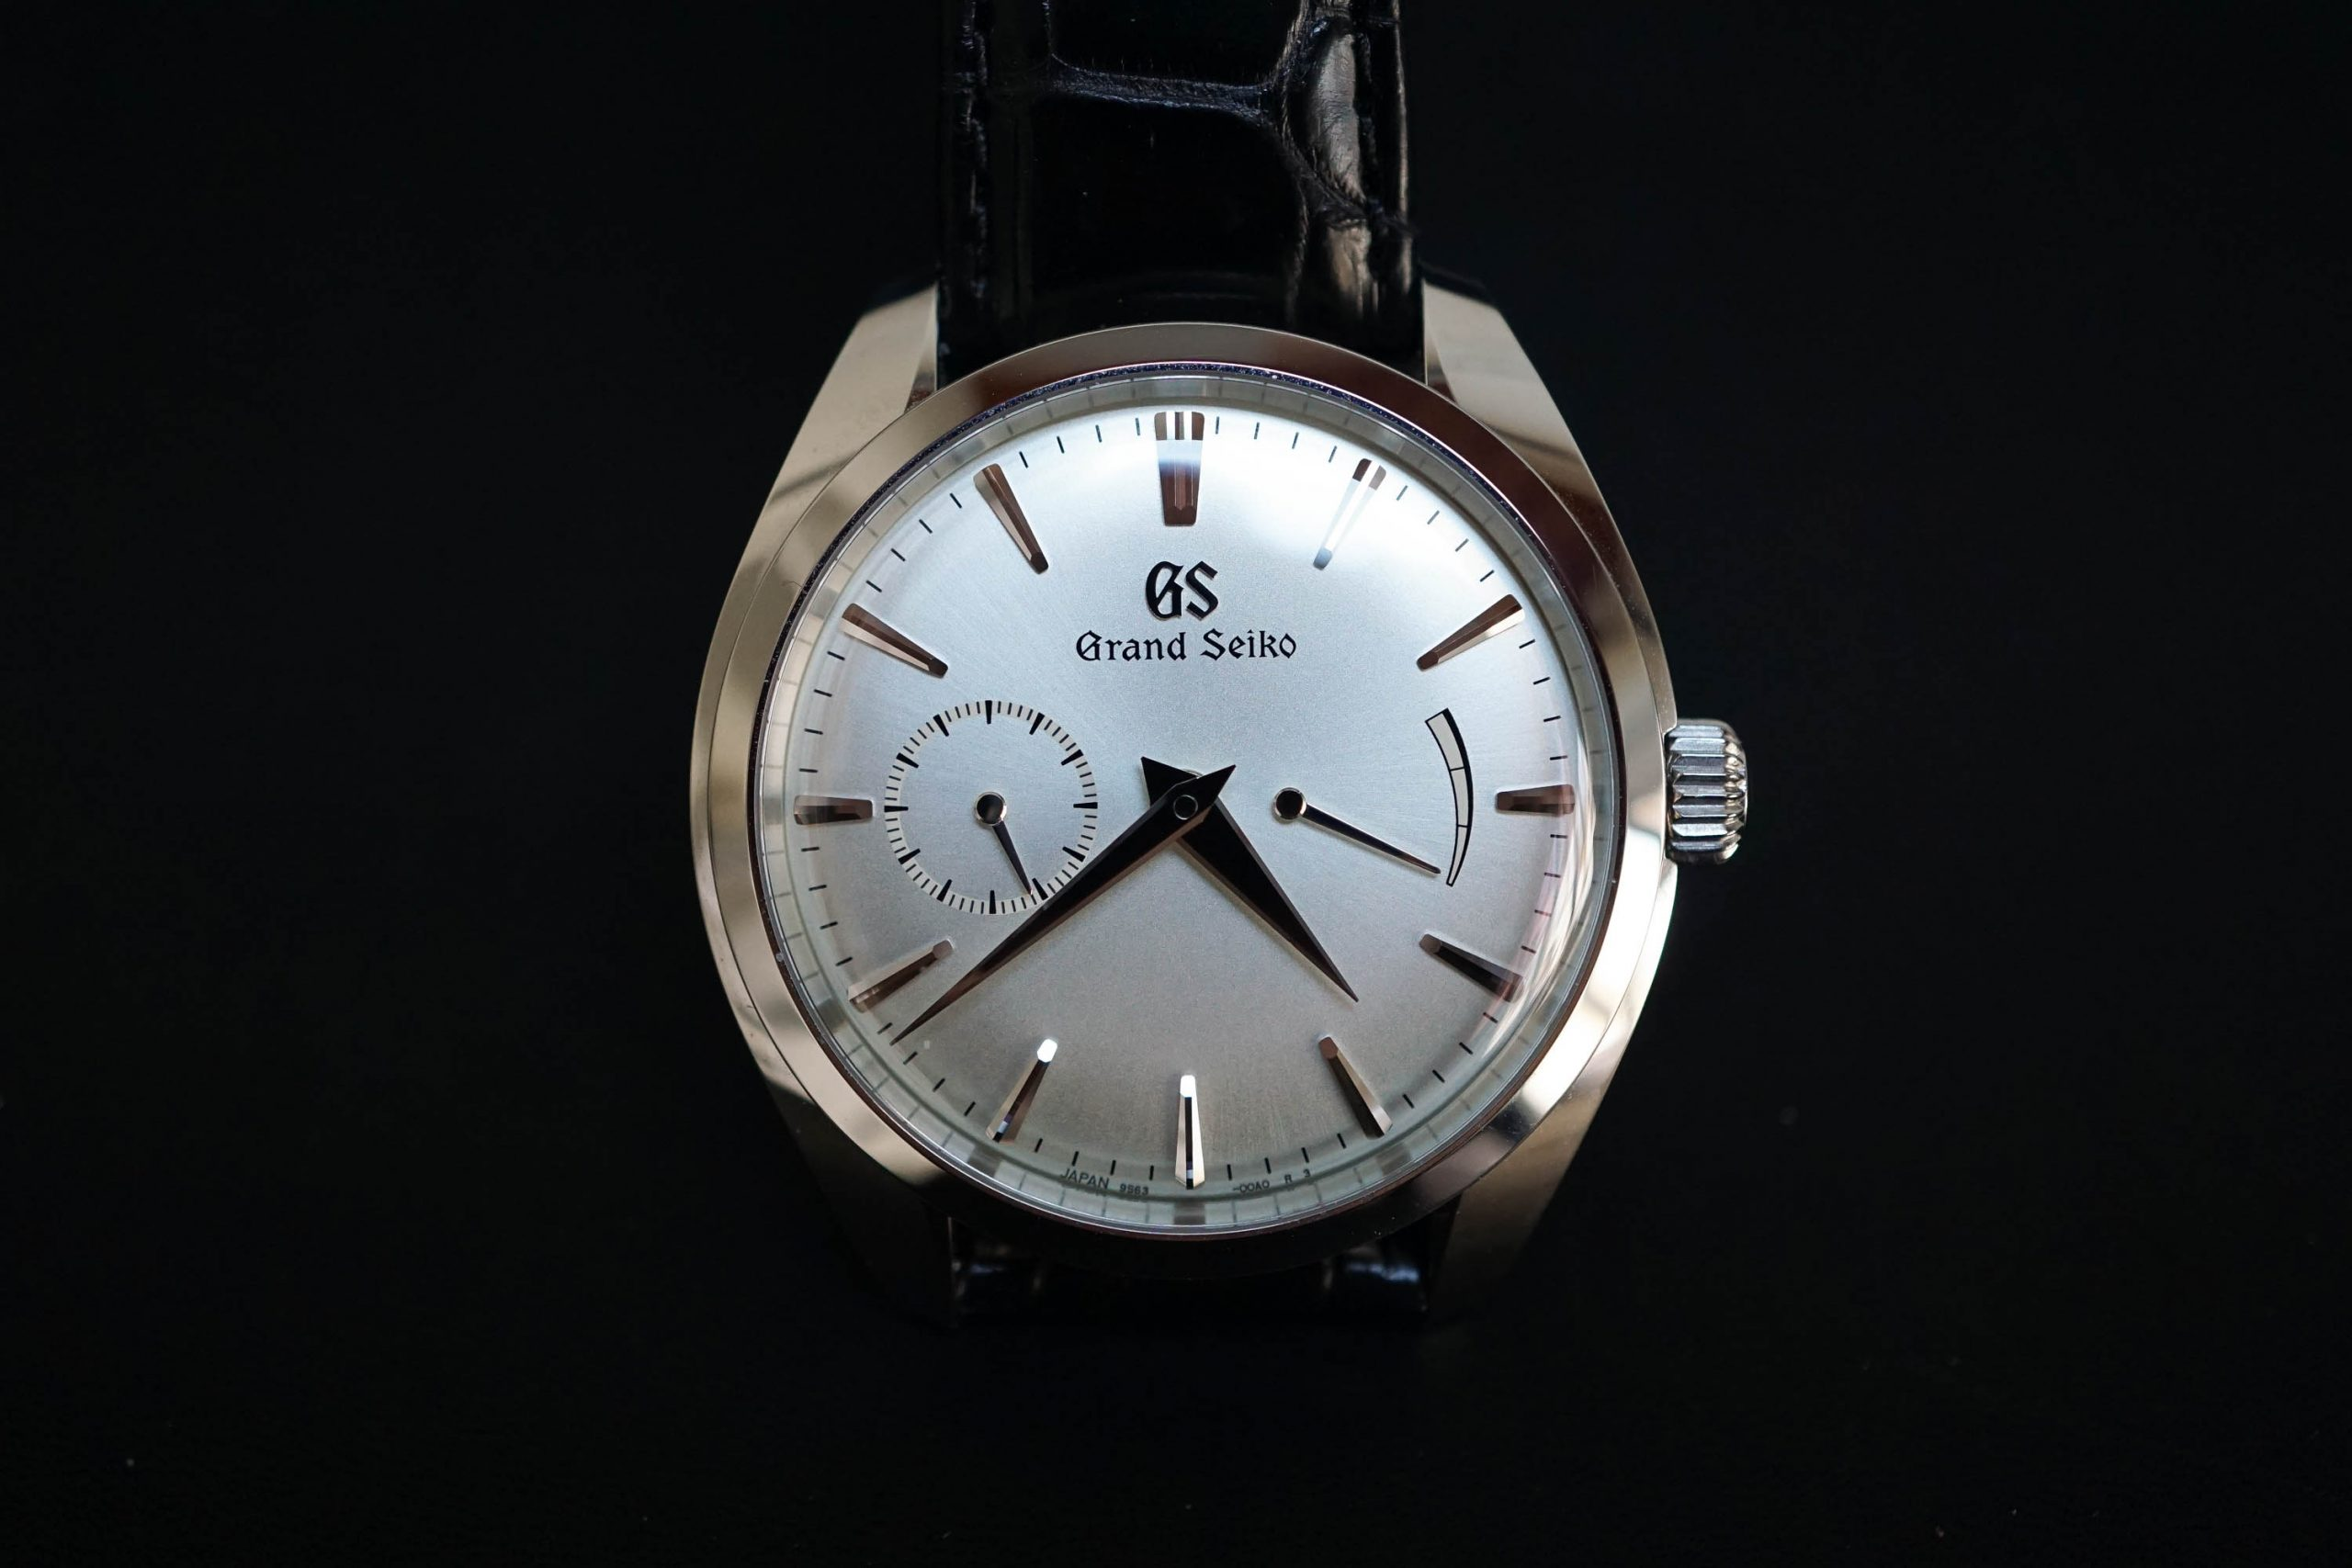 Hands-On Review – Grand Seiko SBGK007